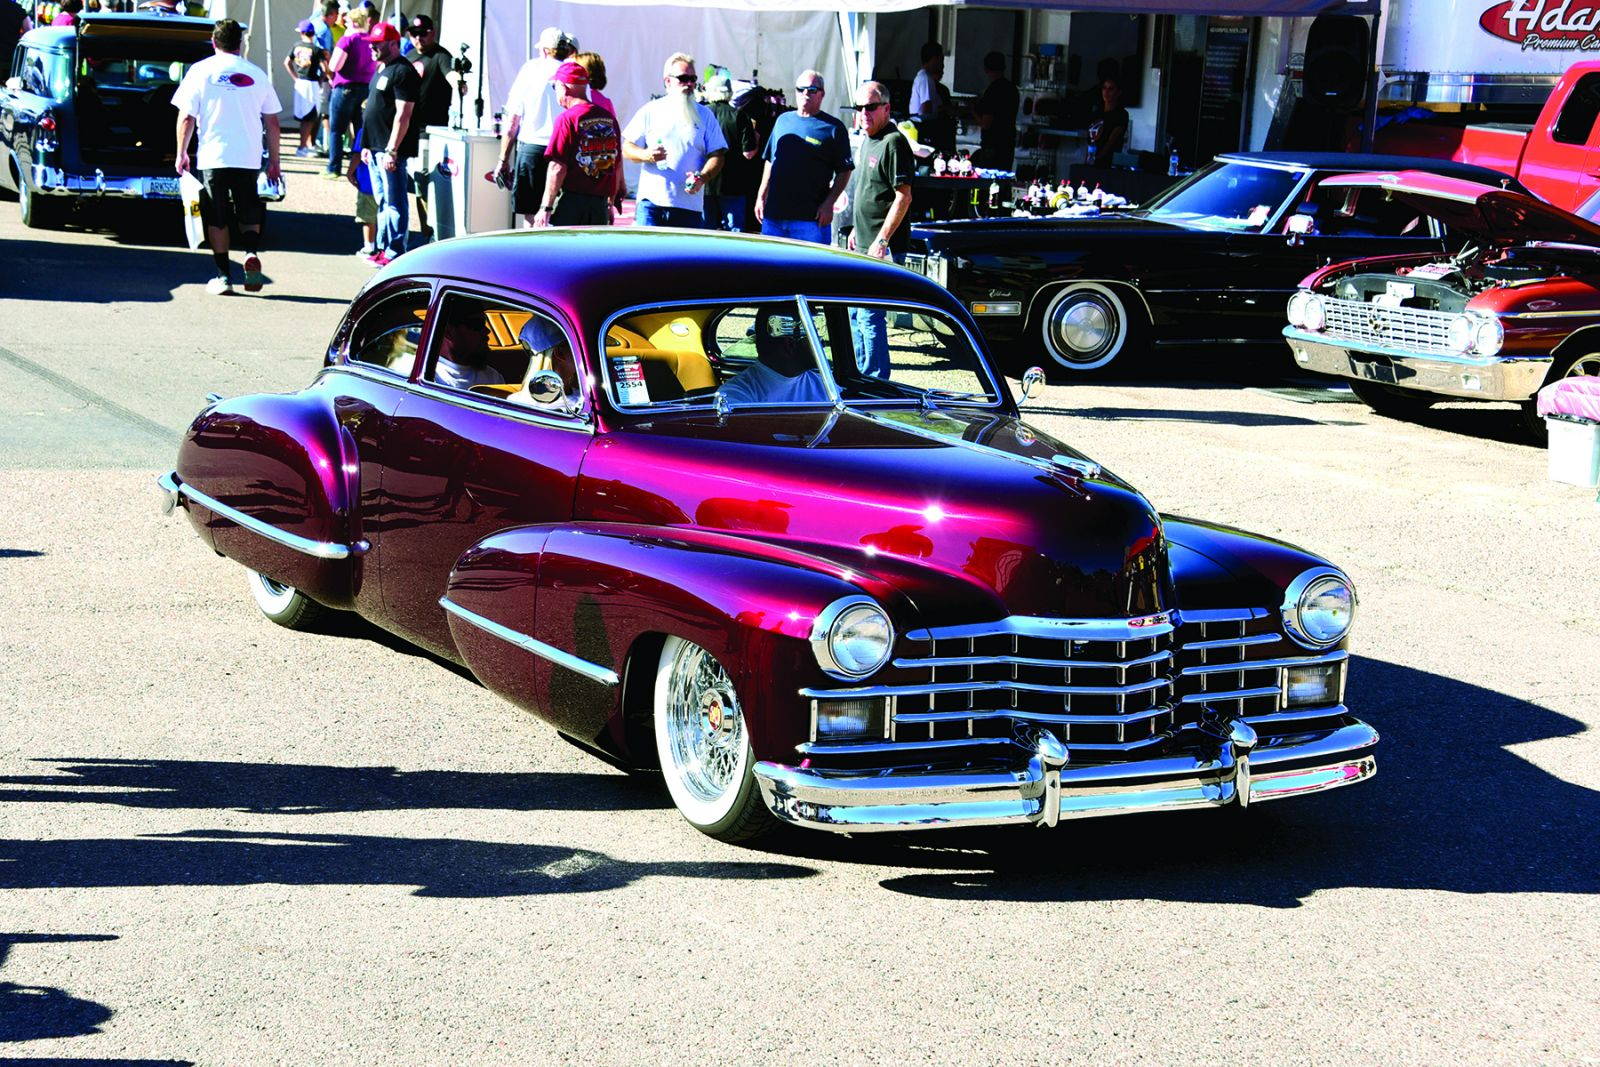 Goodguys Th Spring Nationals Kicks Off Show Season Hotrod Hotline - When is the good guys car show in scottsdale